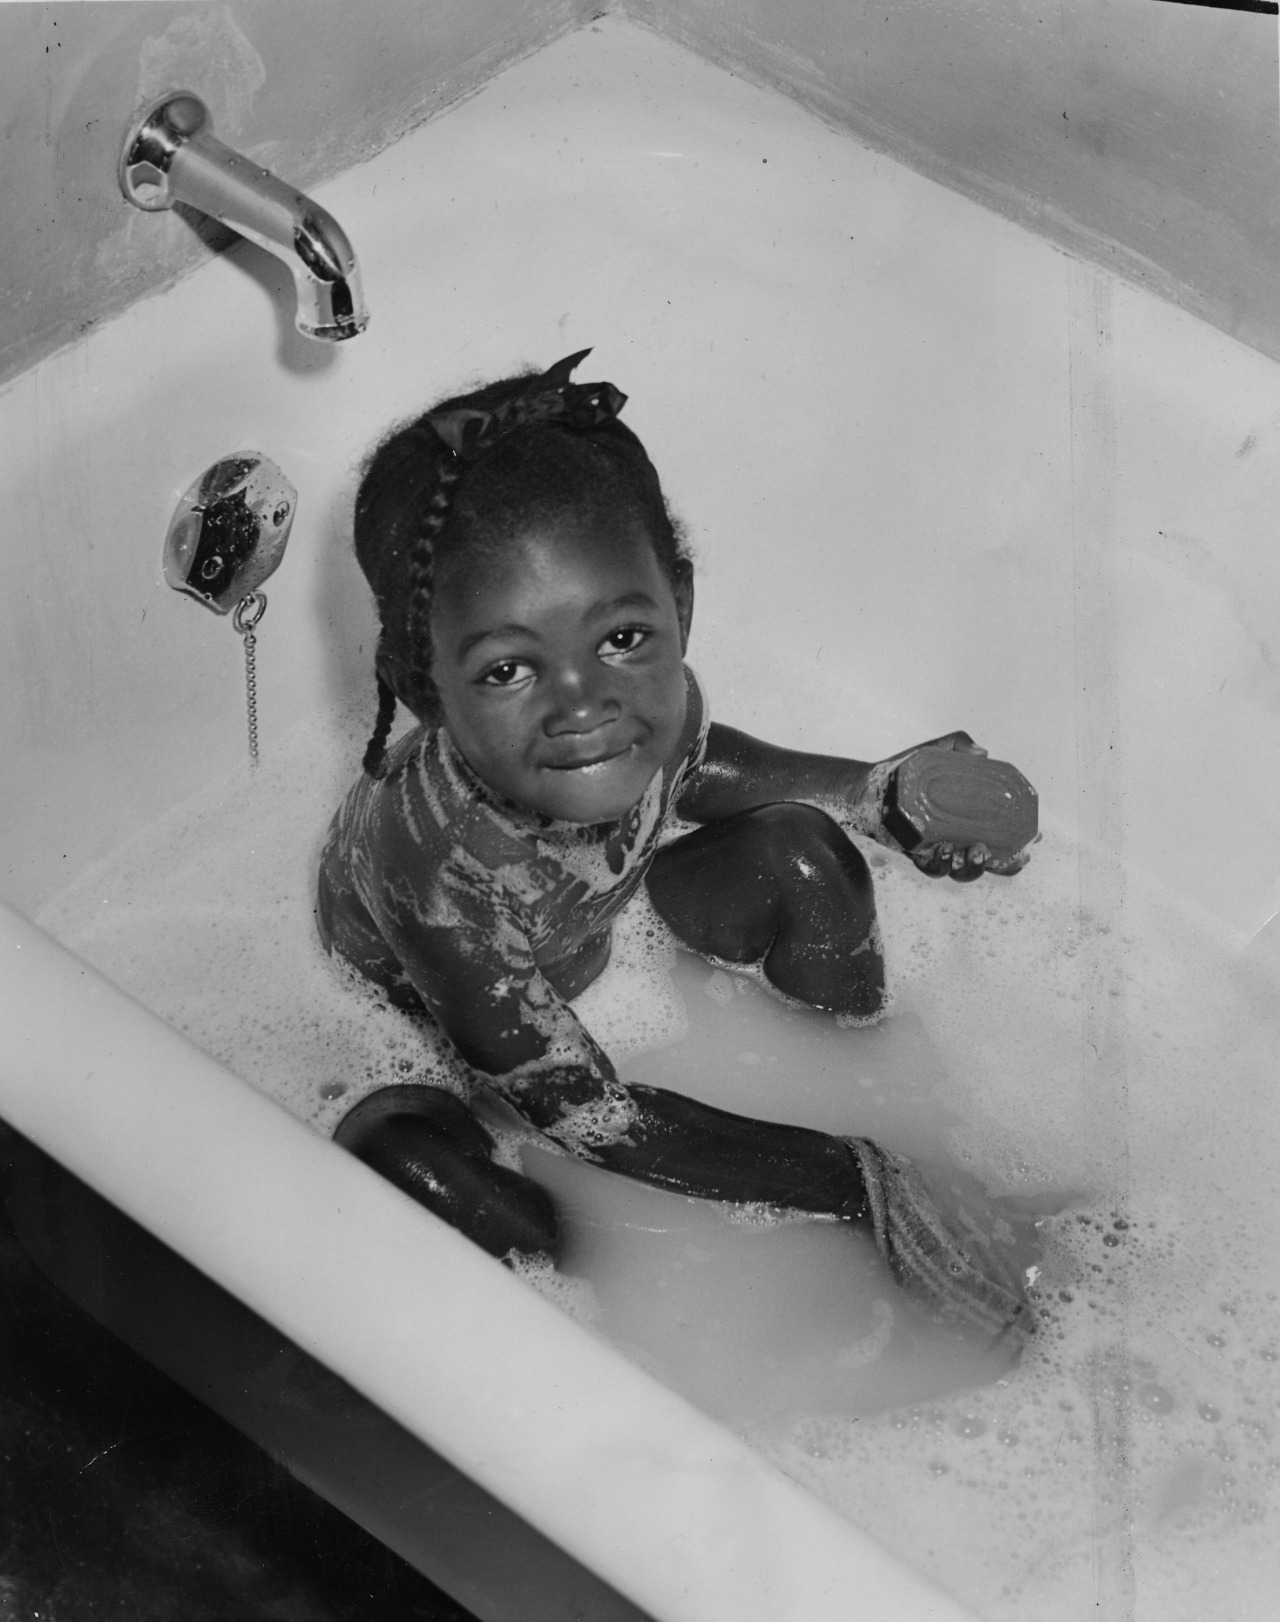 July 17, 1960: Two-year-old La Burna in suds and hot water at Bedford Dwellings. Her family told The Pittsburgh Press they had nothing of the sort in their former slum. (Credit: The Pittsburgh Press)